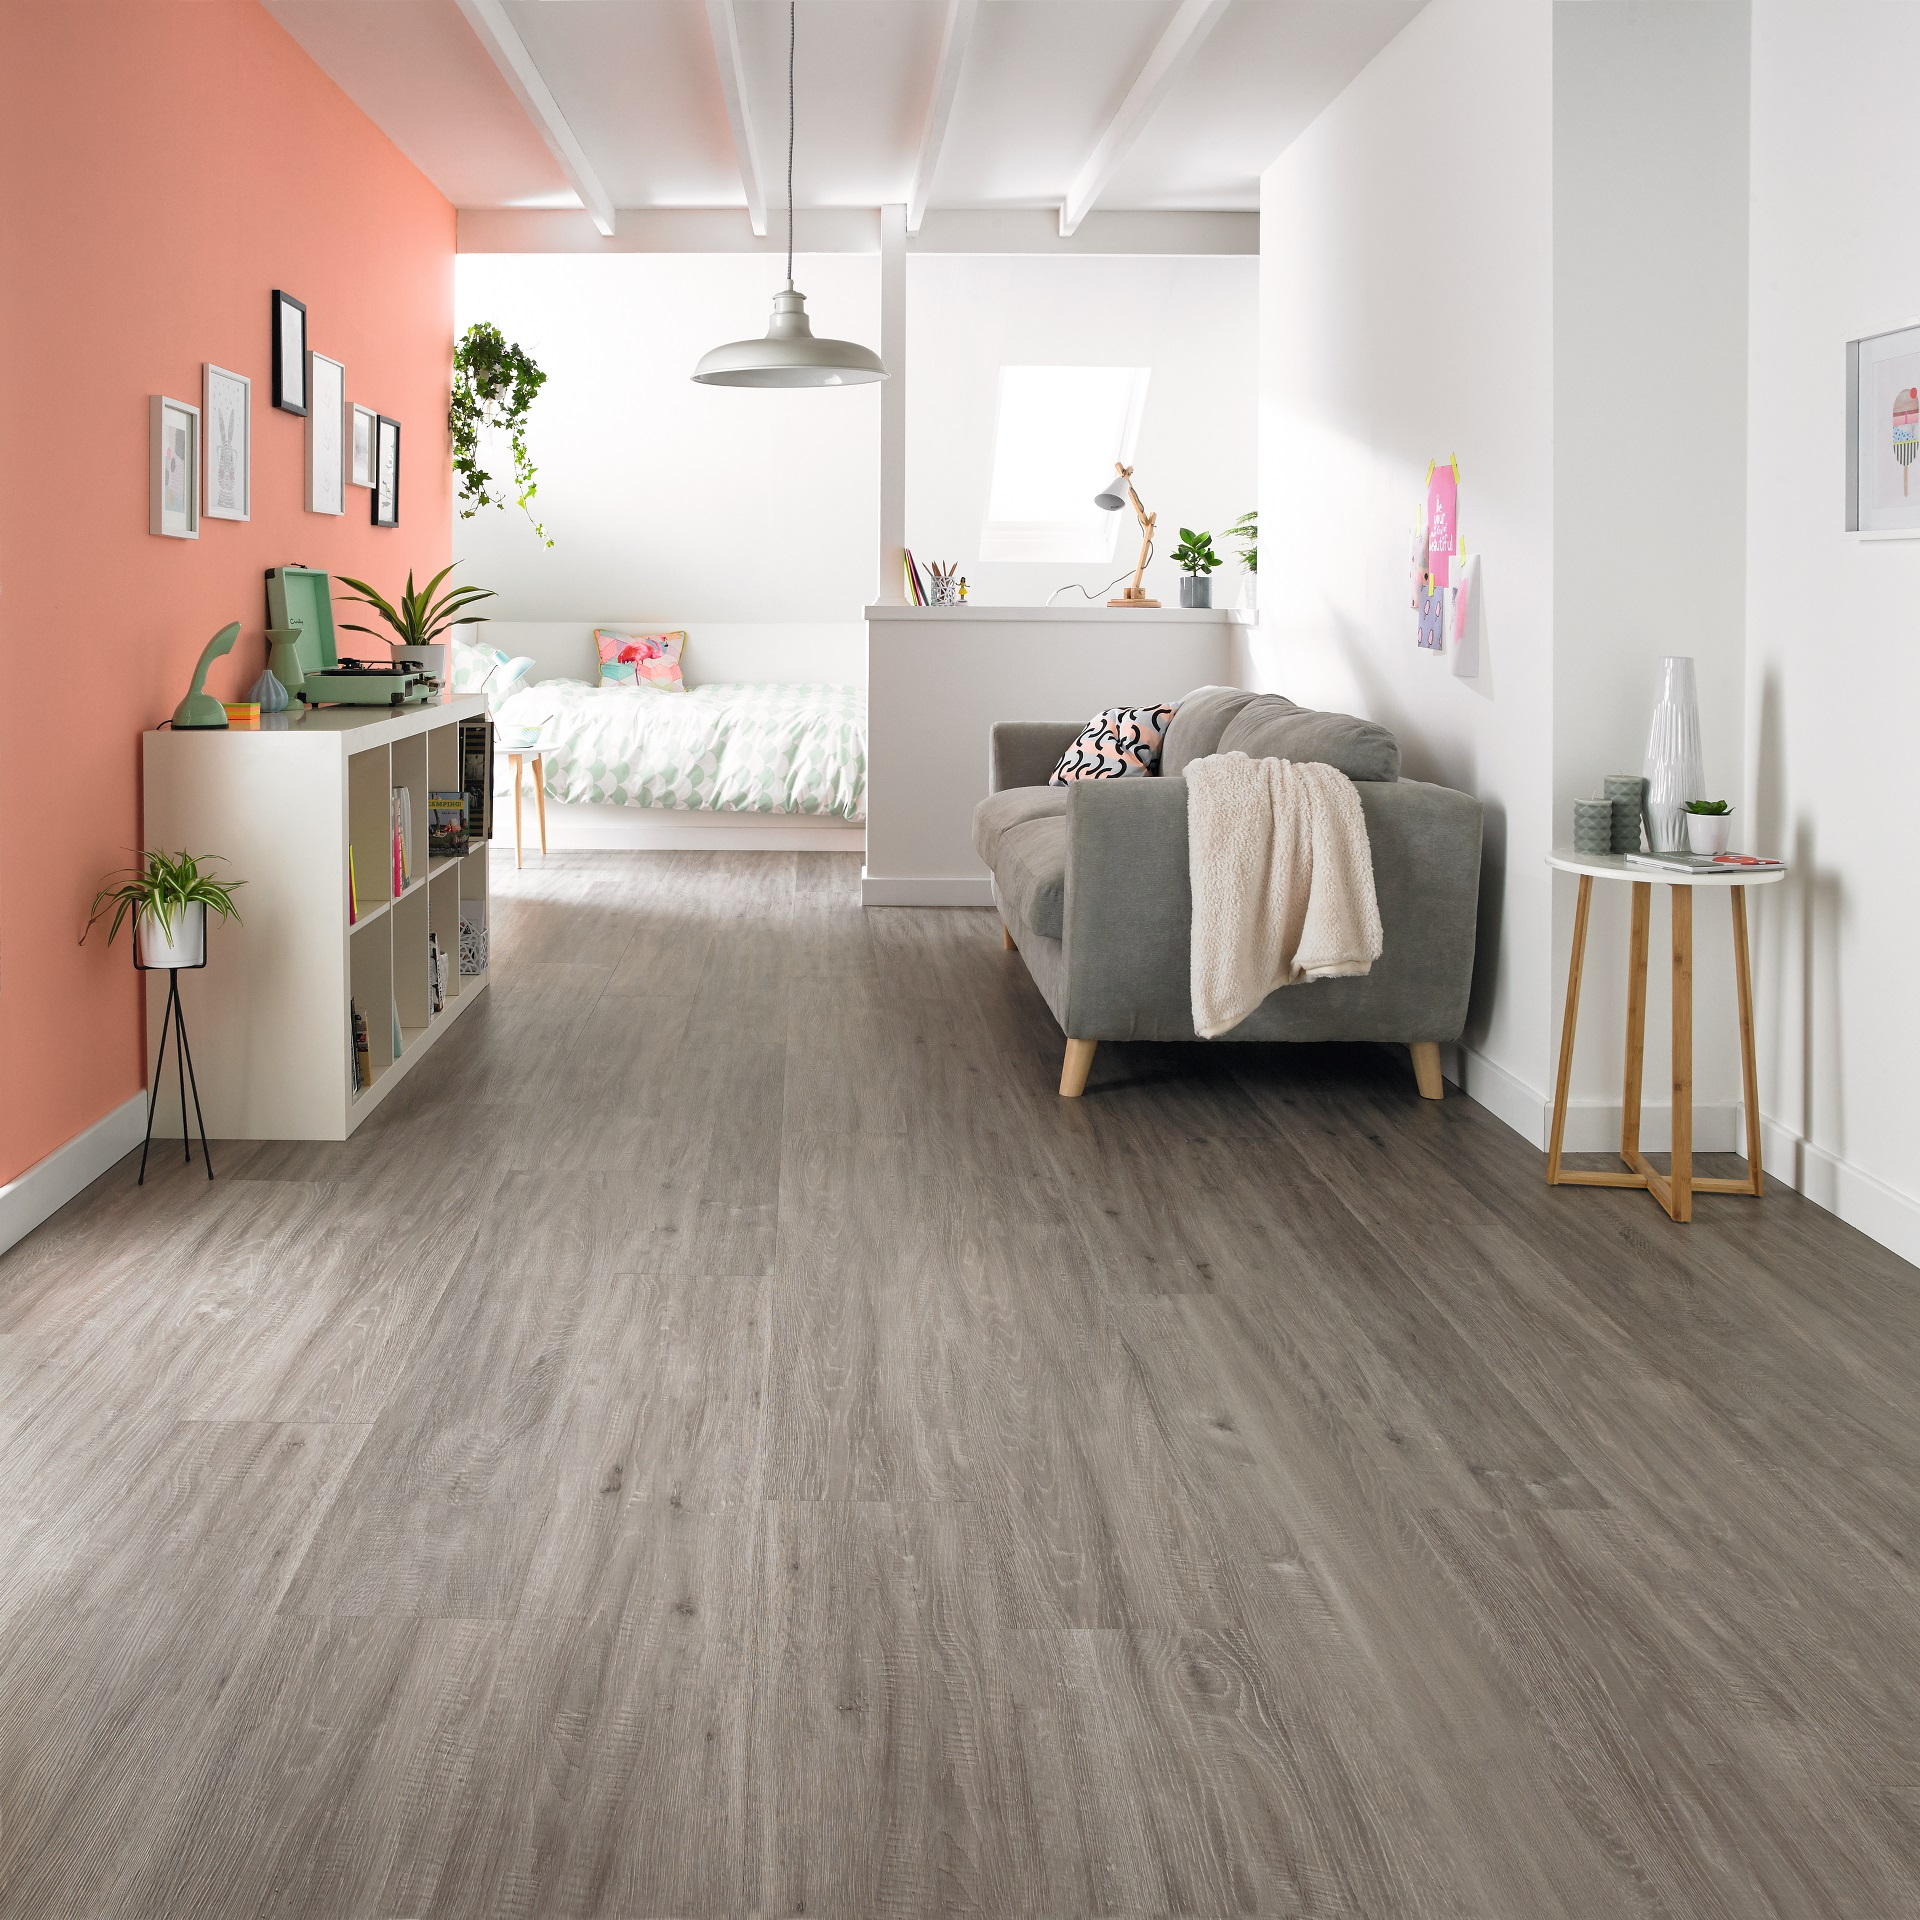 A Comprehensive Bedroom Flooring Guide | Ferma Flooring